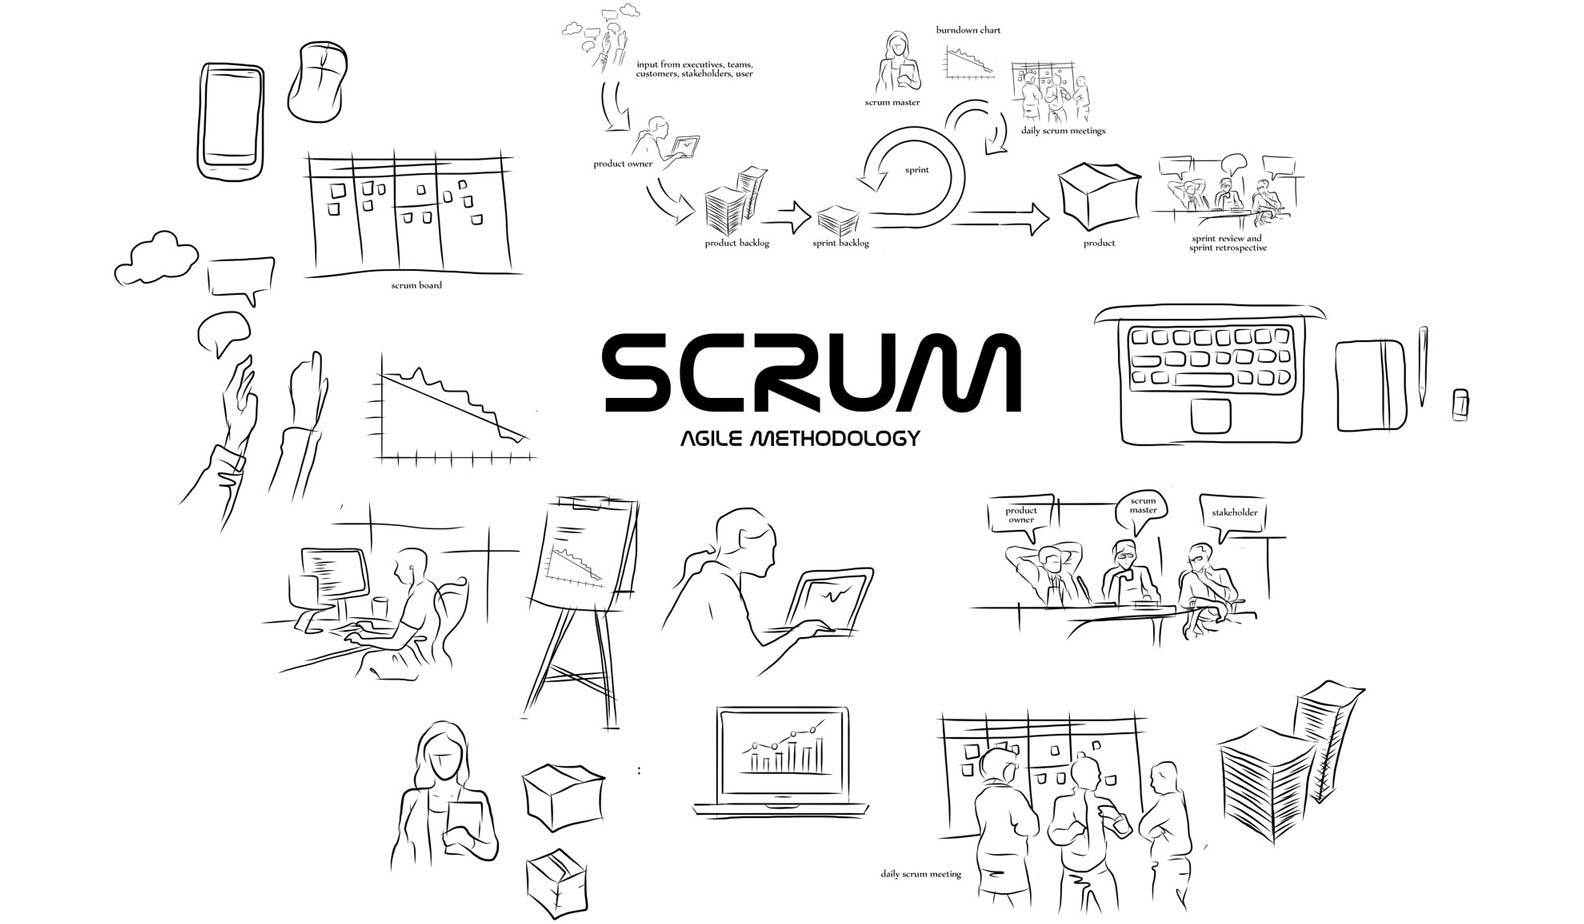 Scrum Agile Development